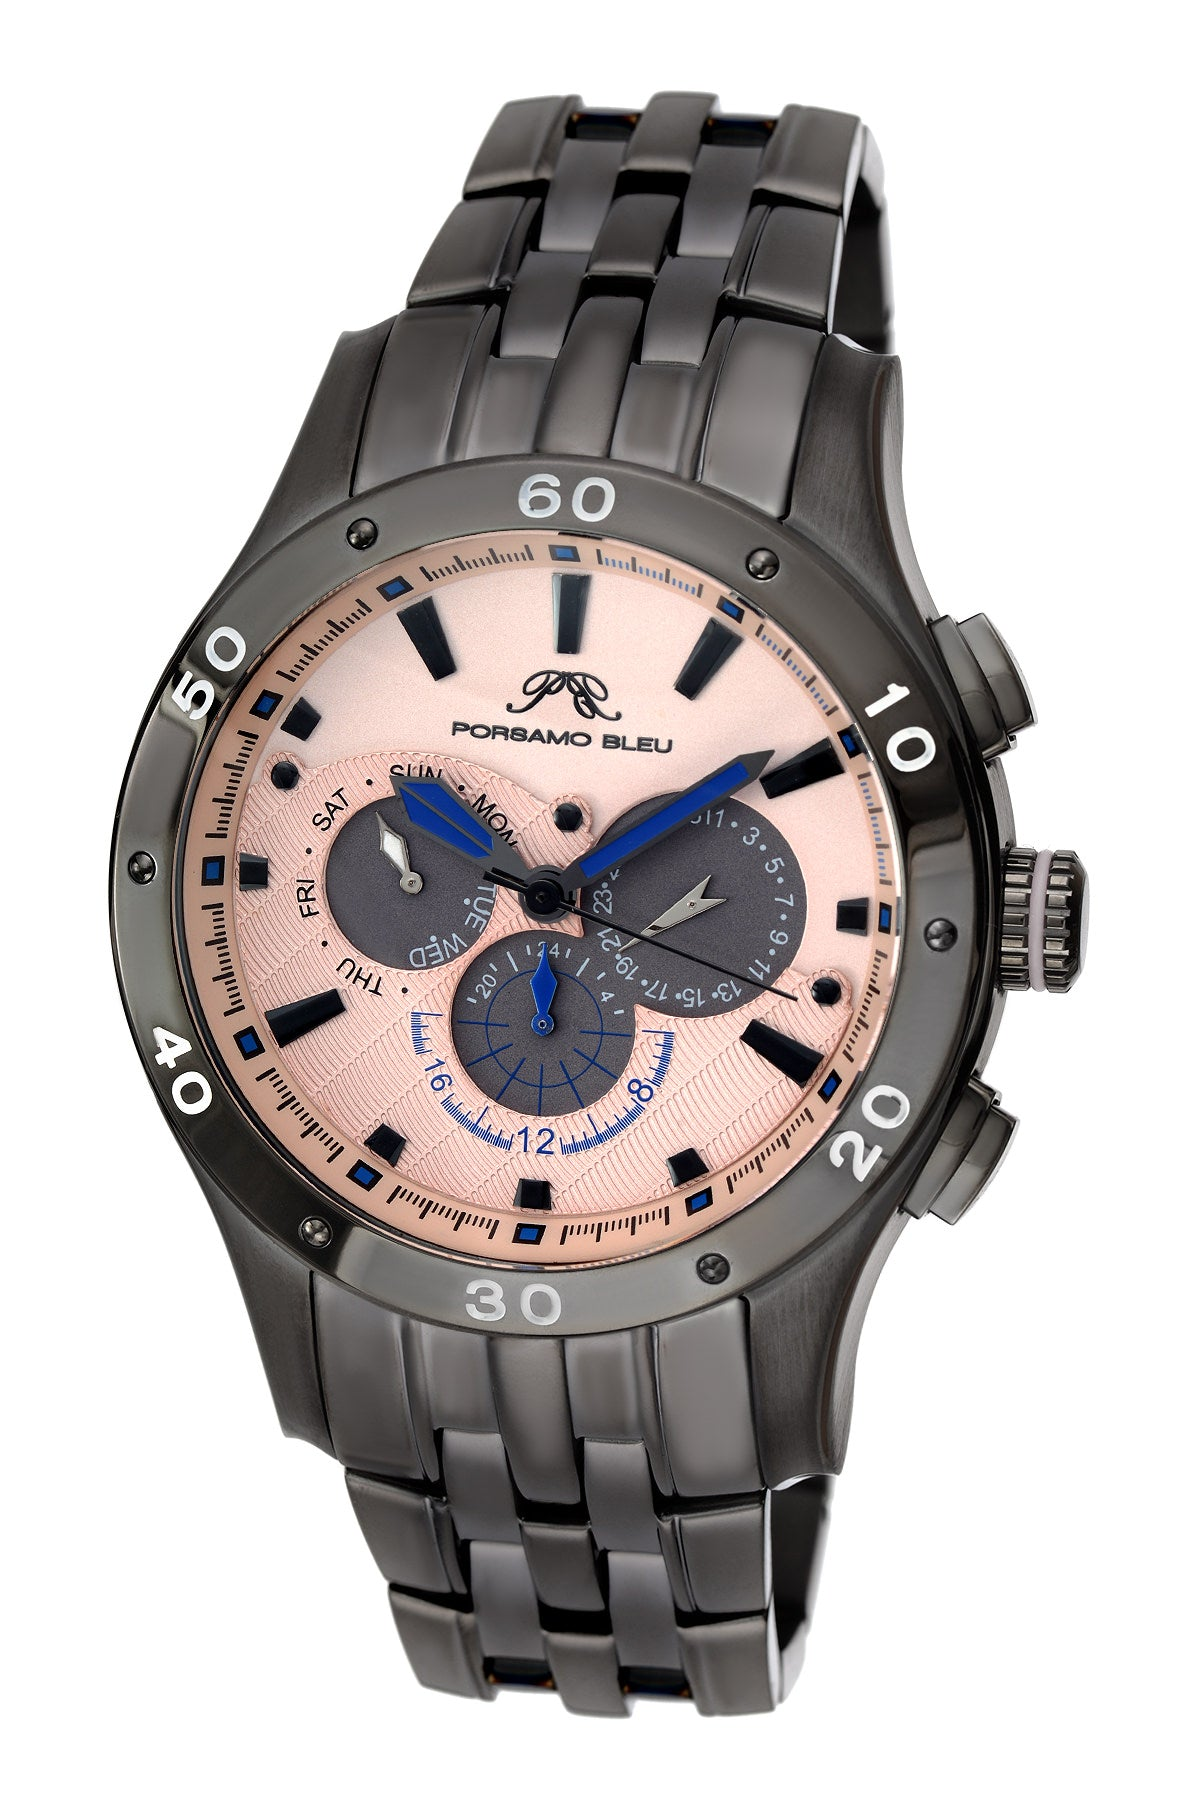 Porsamo Bleu, re luxury men's stainless steel watch, gunmetal, rose 221DANS